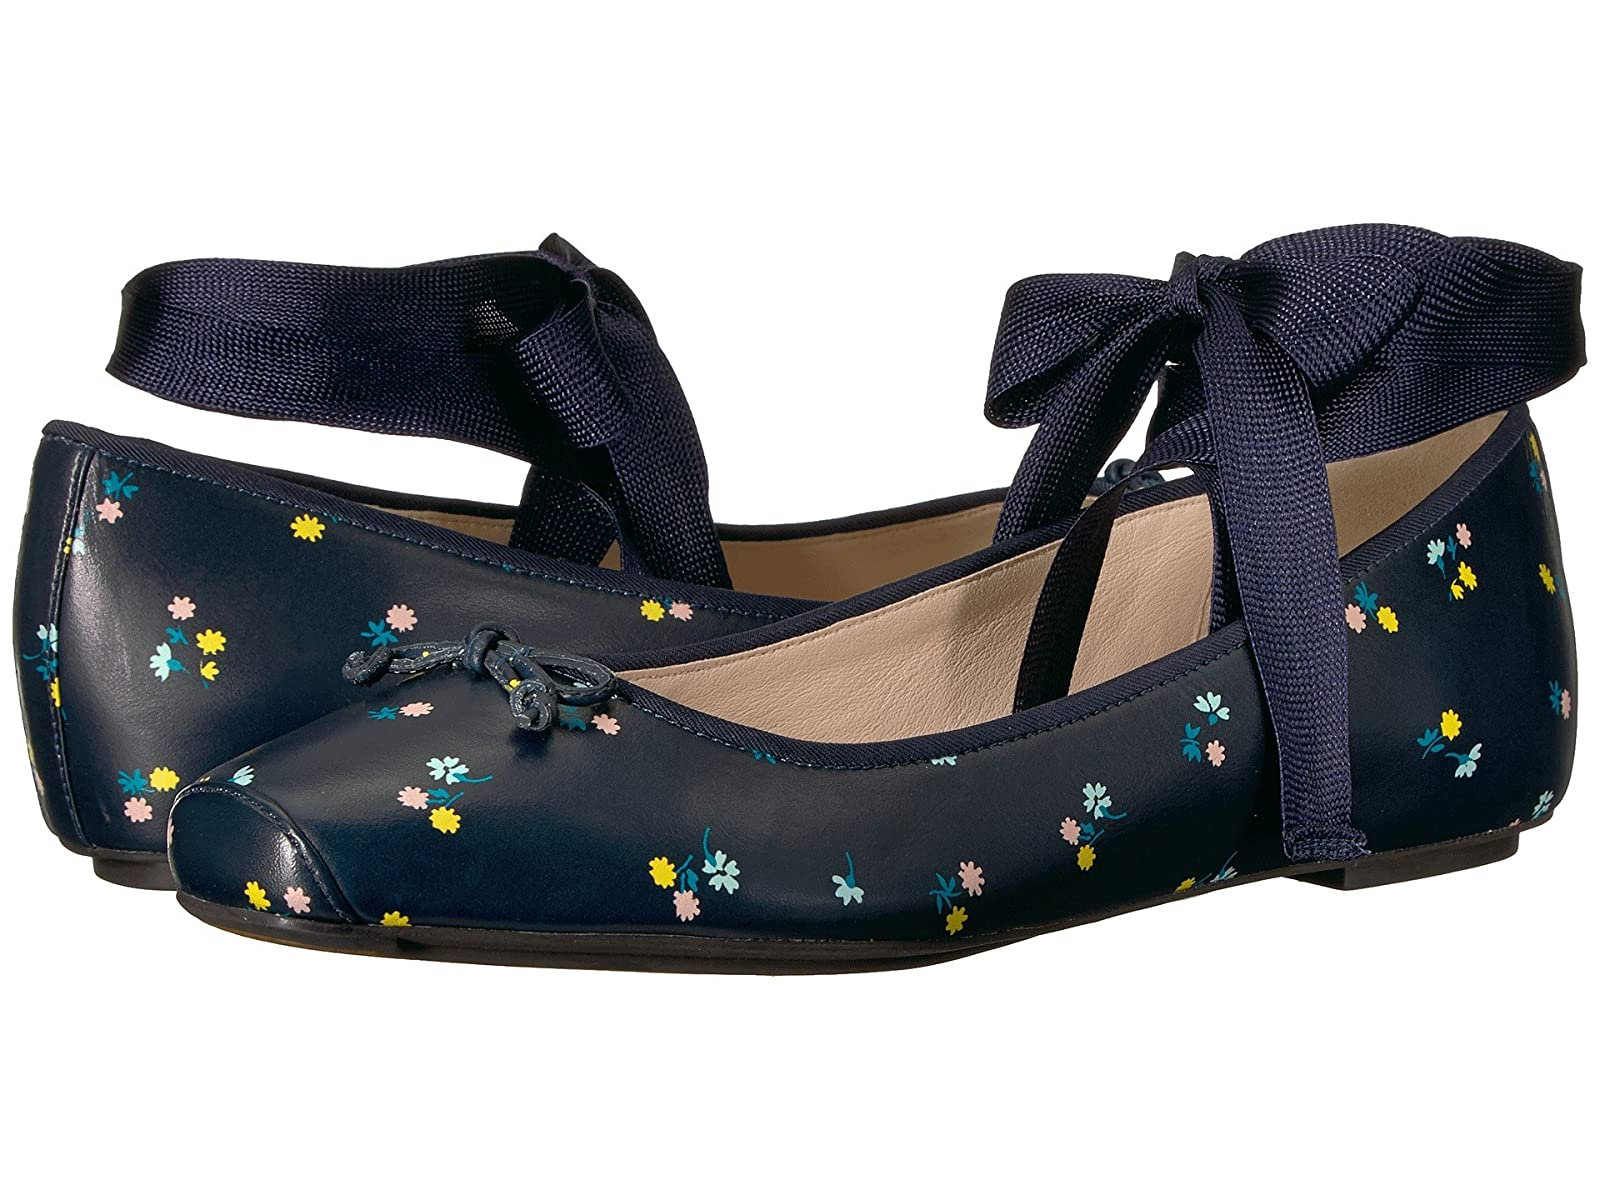 Cole Haan Downtown BalletCheap and distinctive eye-catching shoes